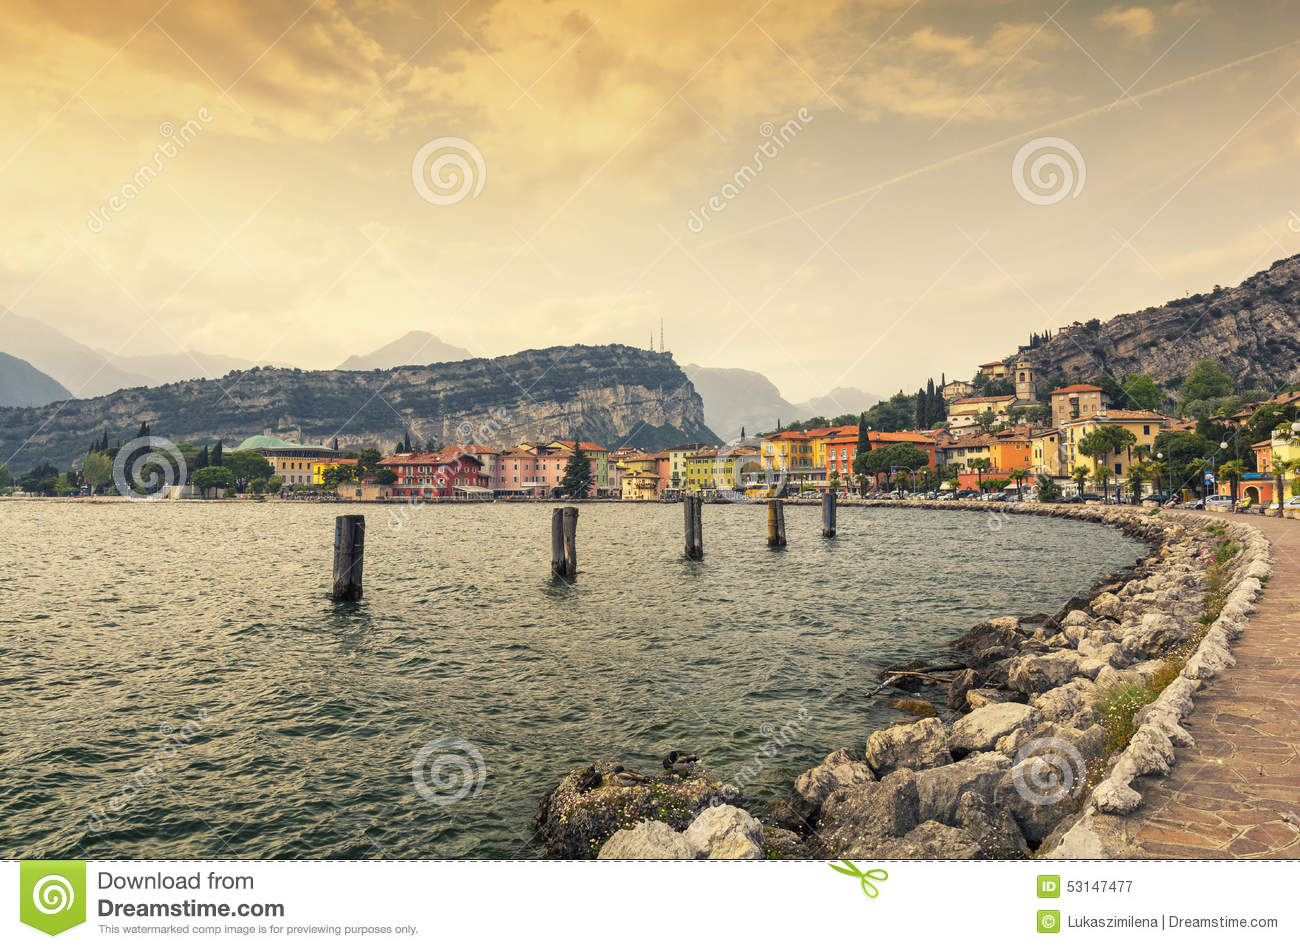 Sunset In Torbole At Lake Garda, Italy Stock Photo.